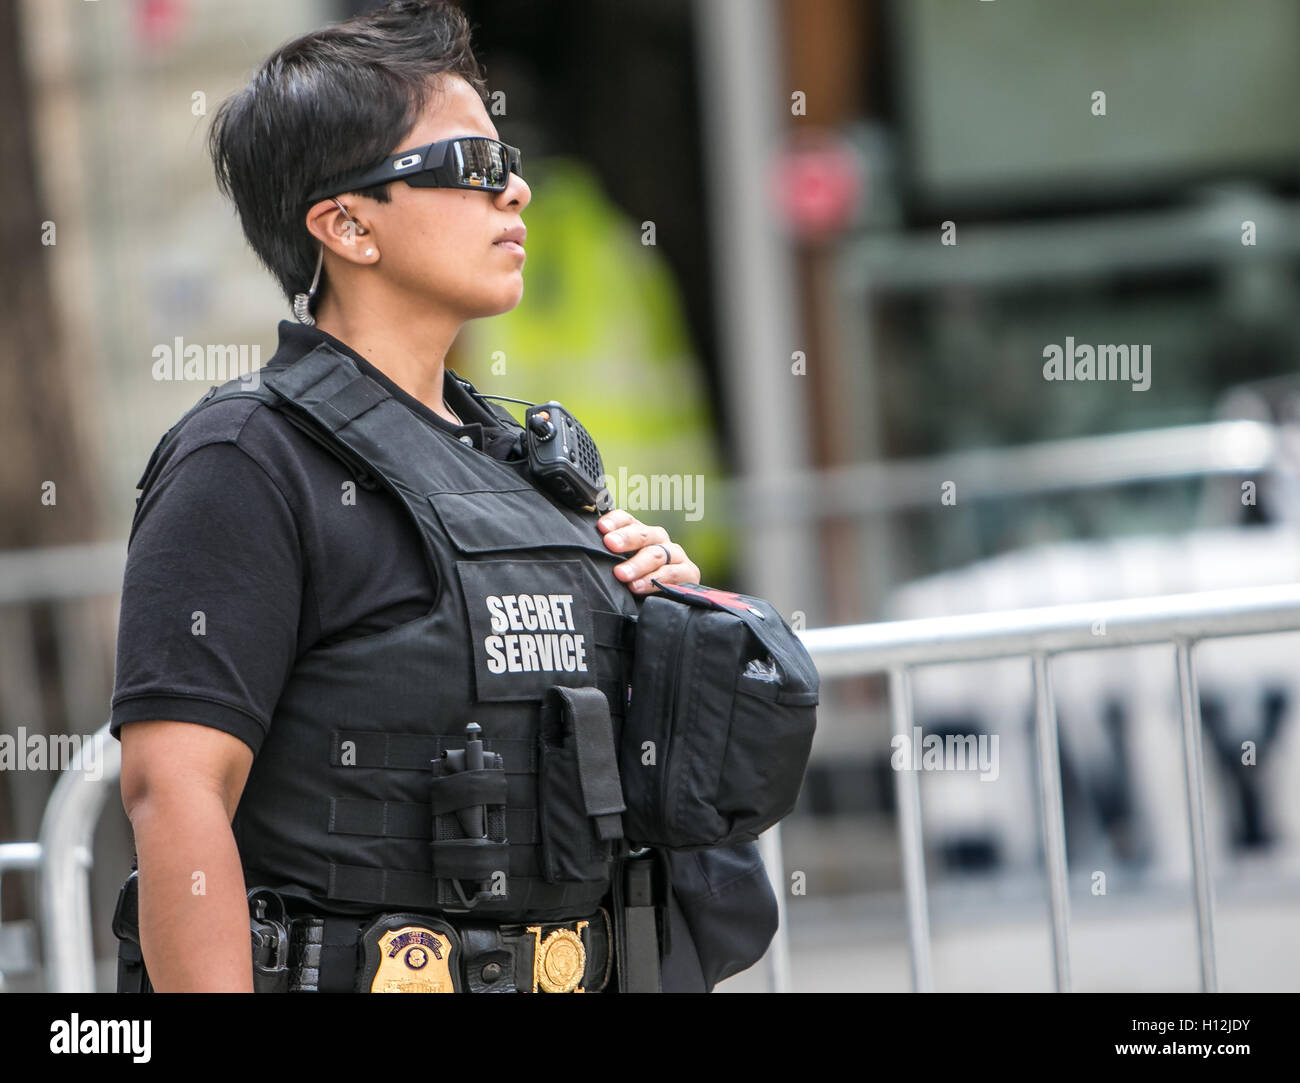 a-female-secret-service-agent-H12JDY.jpg